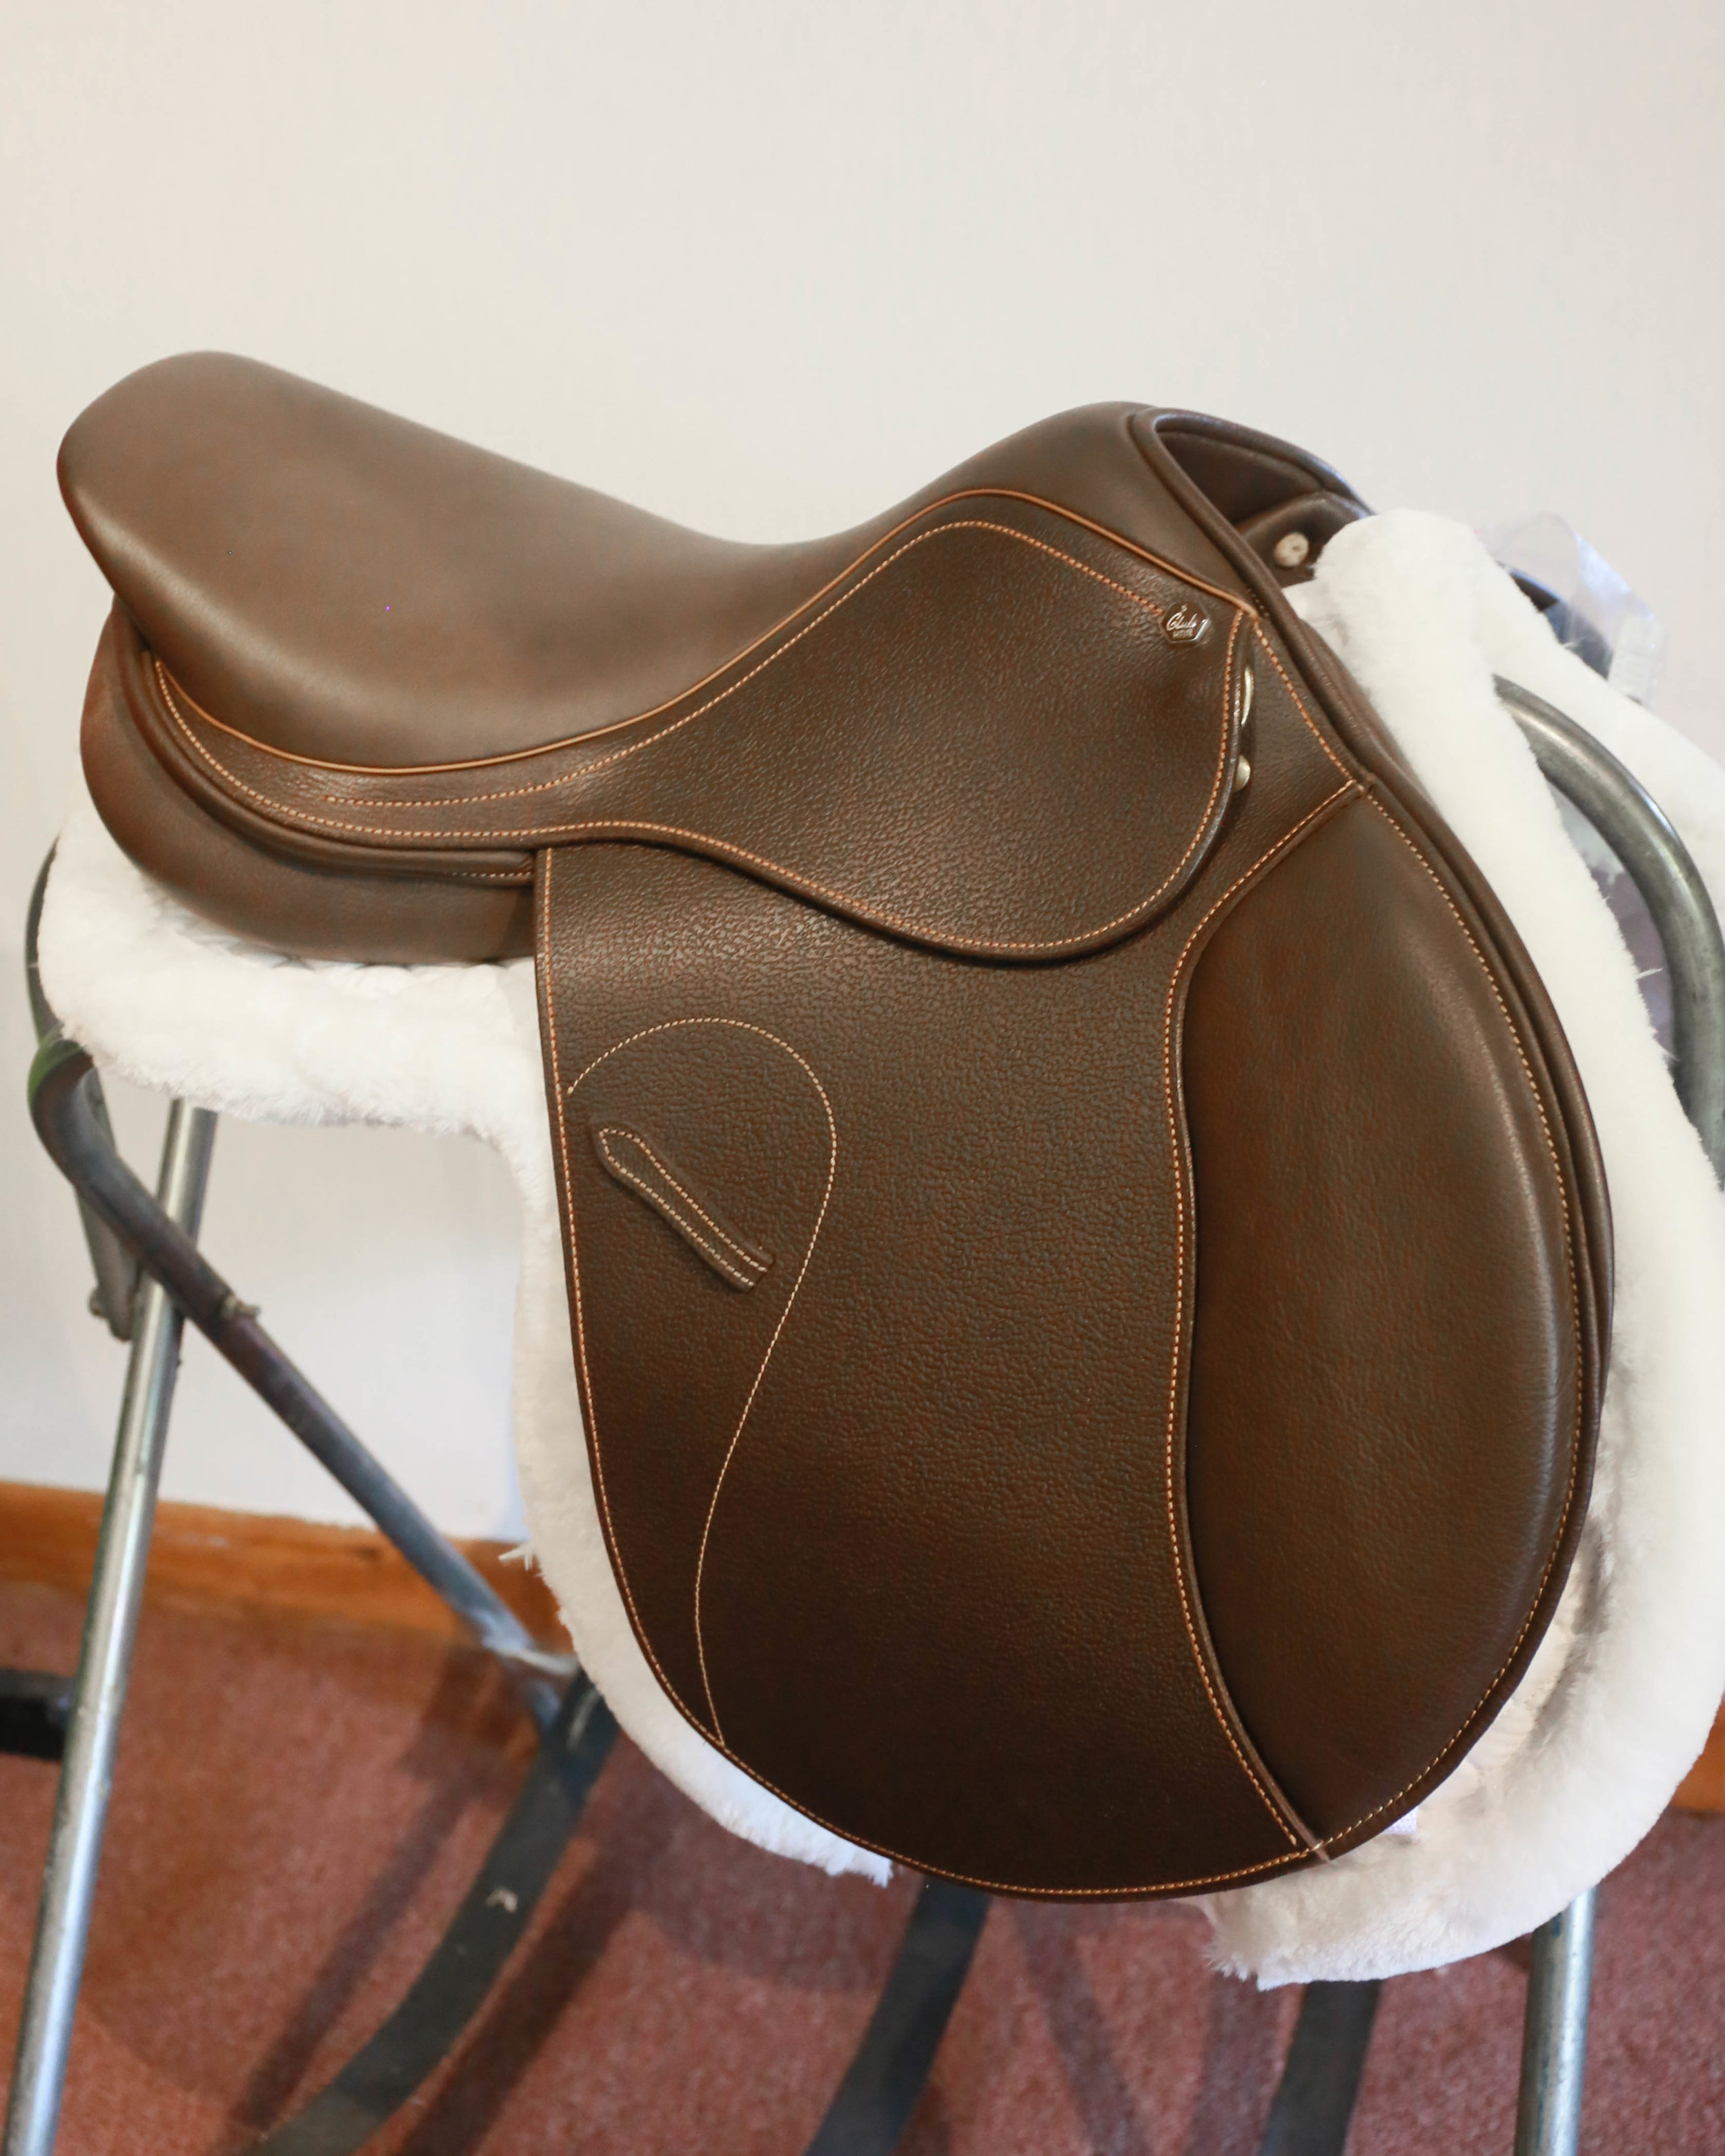 "HDR club - 18"" club saddle for the cost conscience. 495.00"